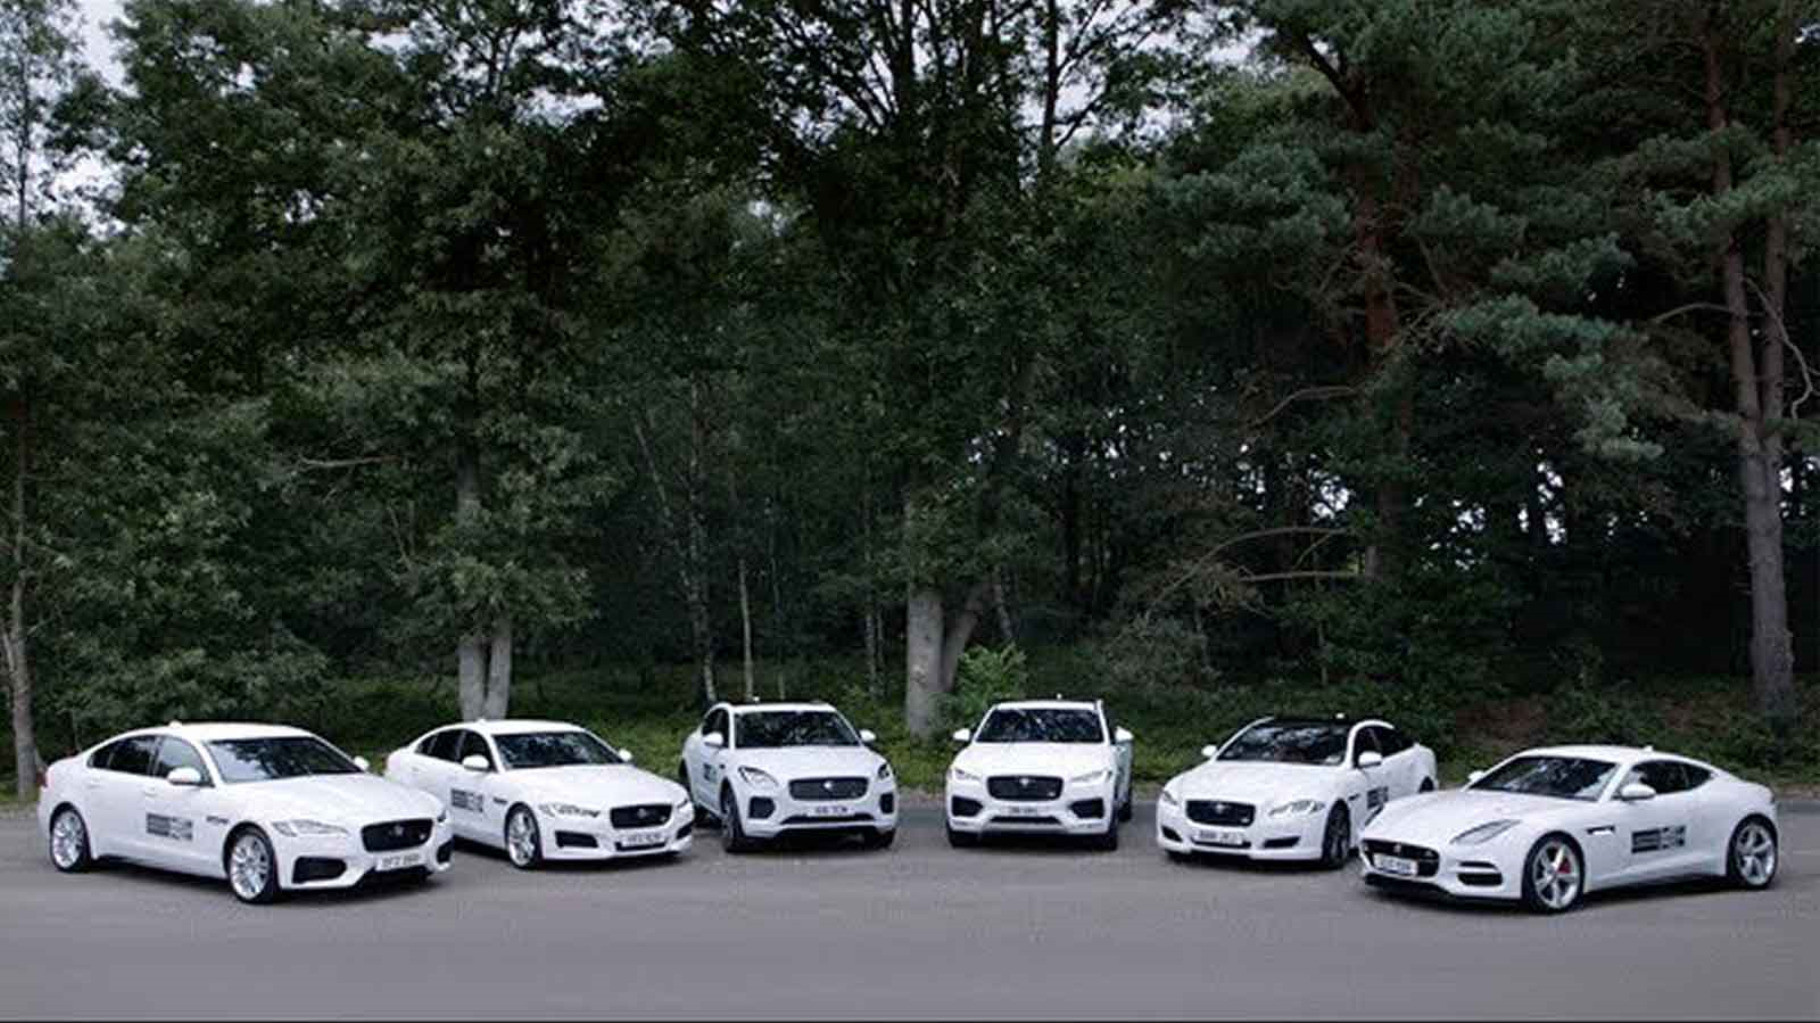 Six White F-TYPE'S Parked.